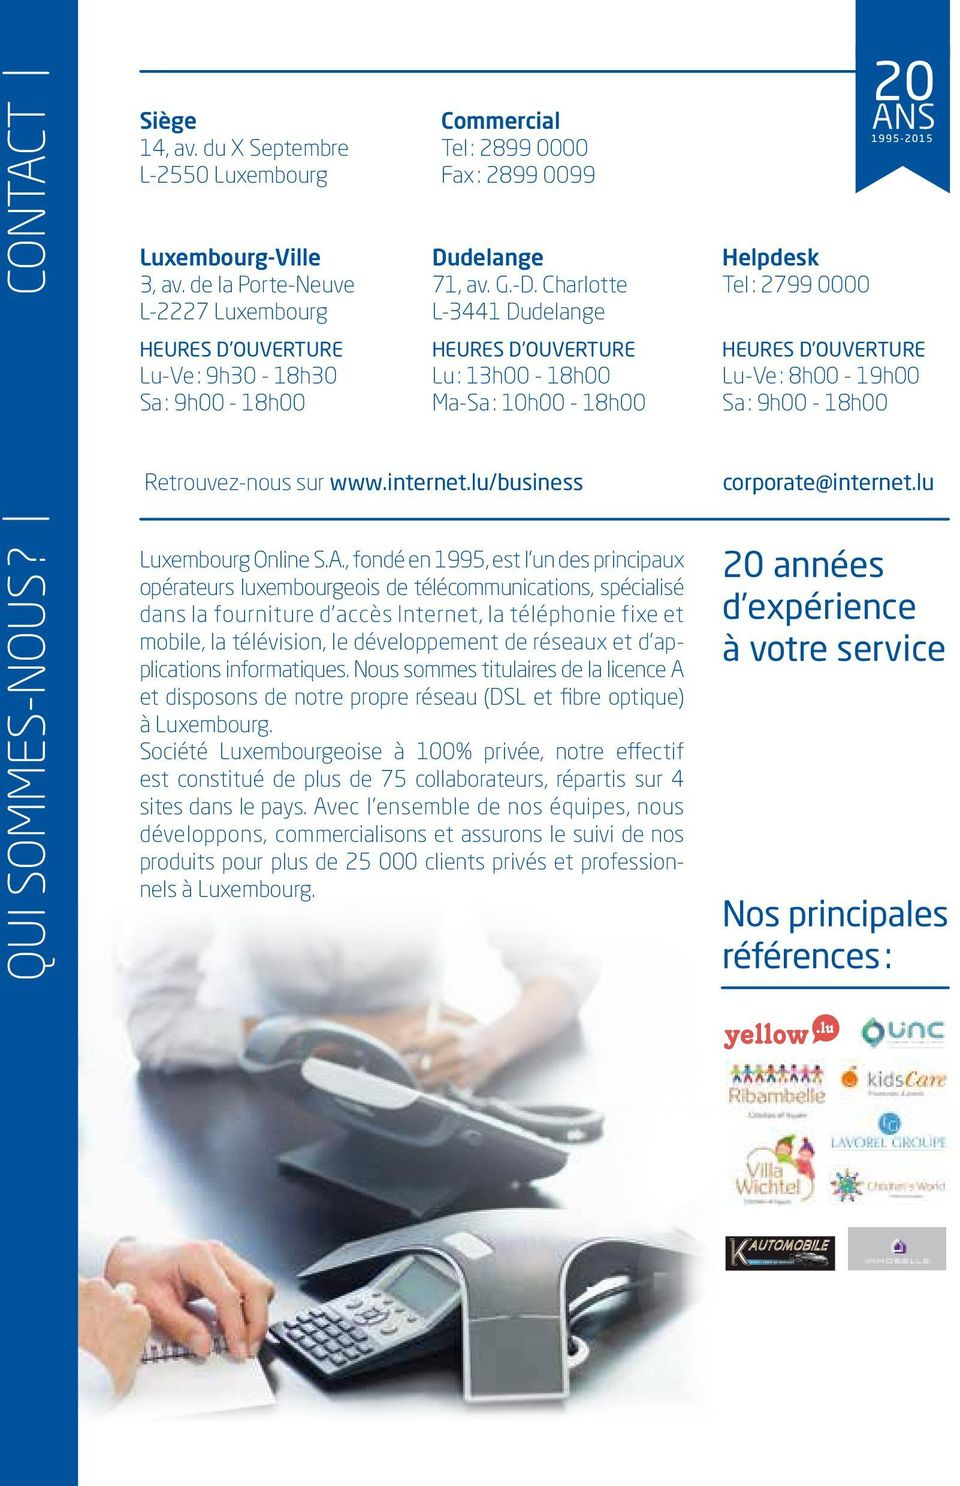 lu/business corporate@internet.lu qui sommes-nous? Luxembourg Online S.A.